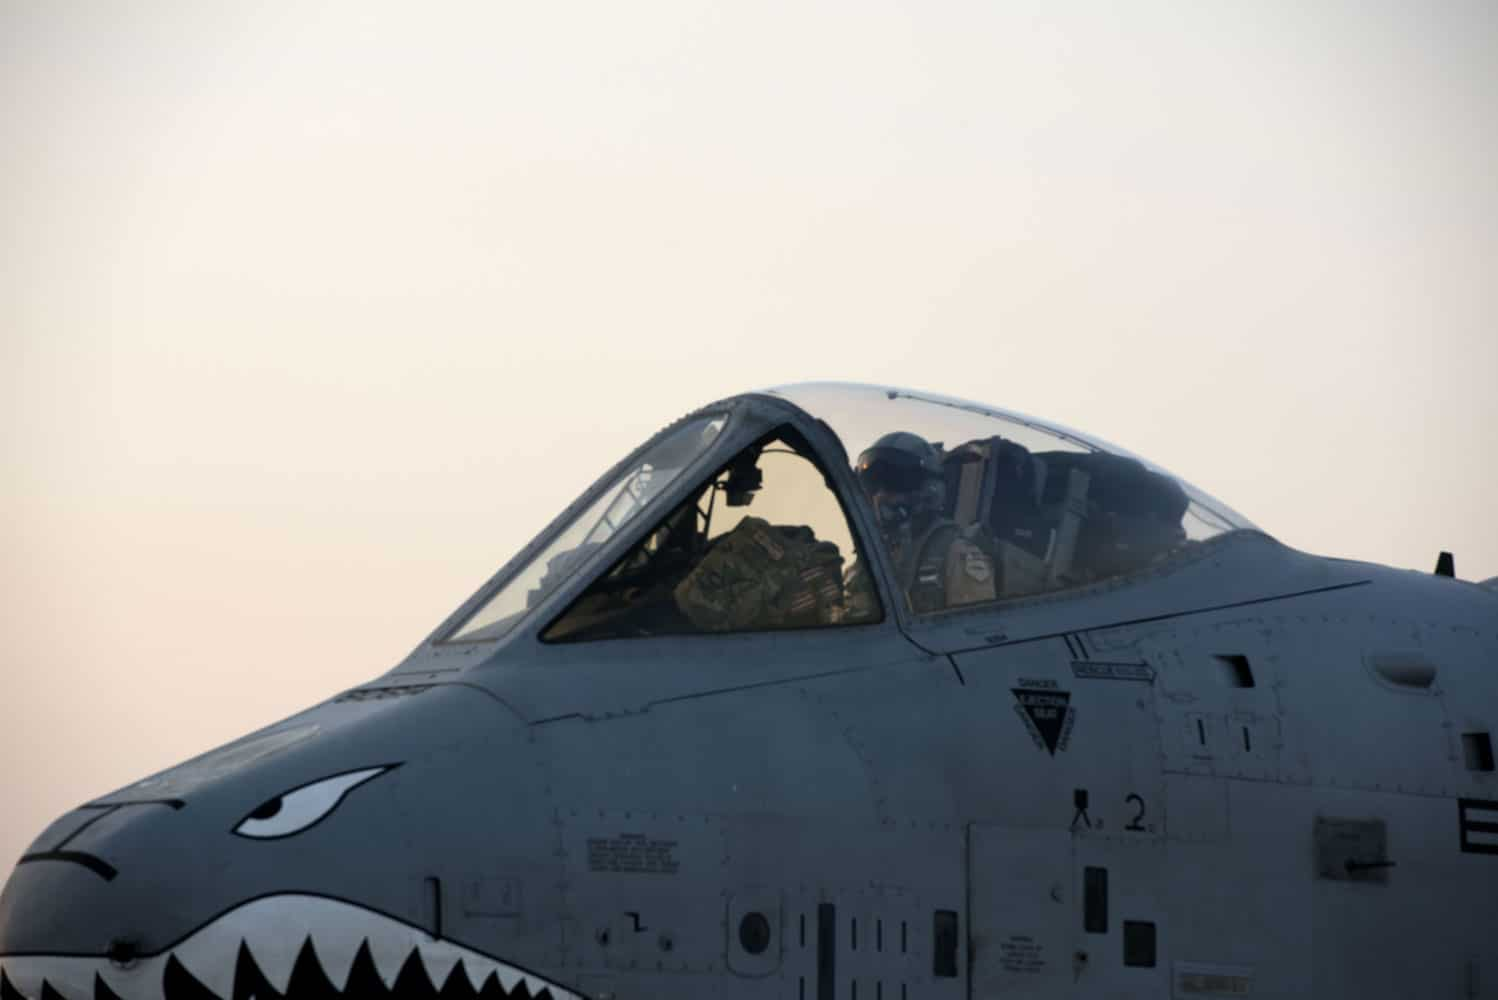 An A-10 Thunderbolt II taxis on the runway at Incirlik Air Base, Turkey. A-10s are specially designed for close air support of ground forces, and can also be used against ground targets including tanks and other armored vehicles.